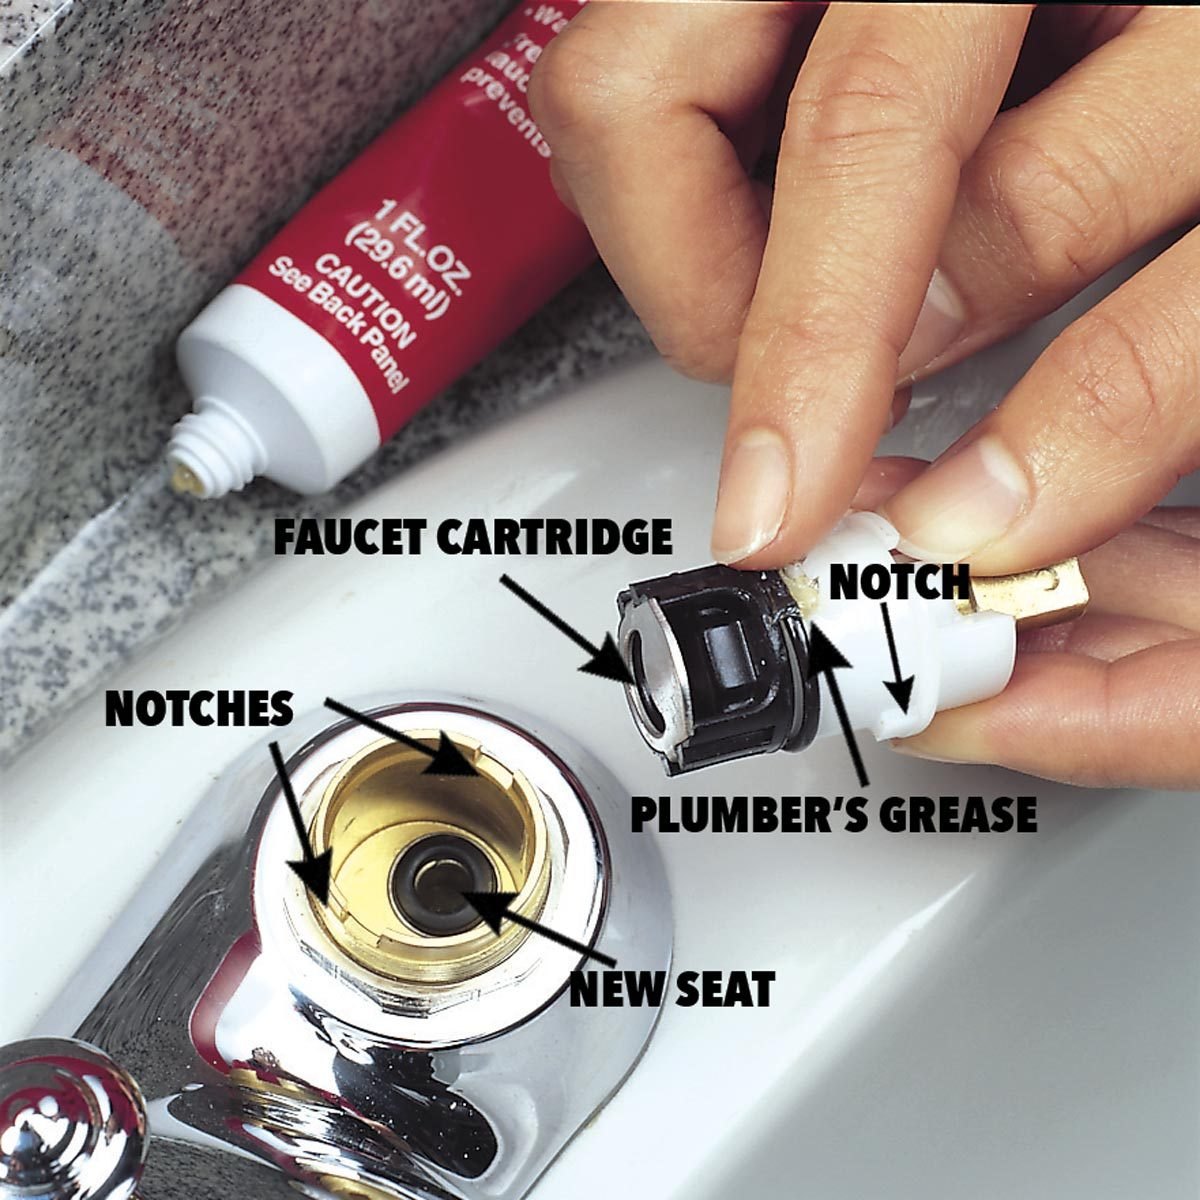 Quickly Fix A Leaky Faucet Cartridge The Family Handyman Delta Tools Wiring Diagram Drop New Spring Into Recess And Push Seat In With Your Finger Spread Thin Layer Of Plumbers Grease Around